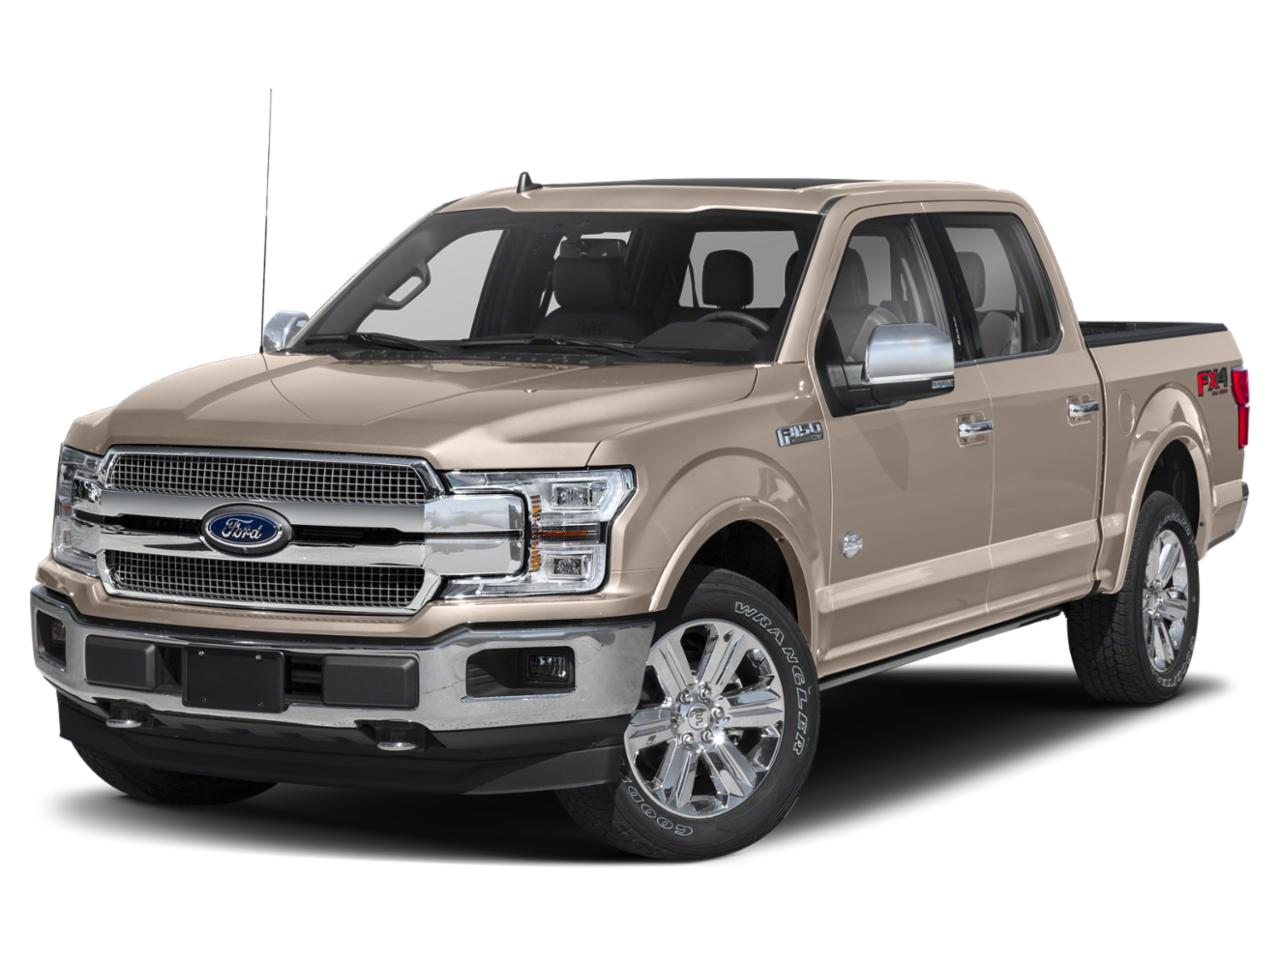 2018 Ford F-150 KING RANCH Crew Cab Pickup Slide